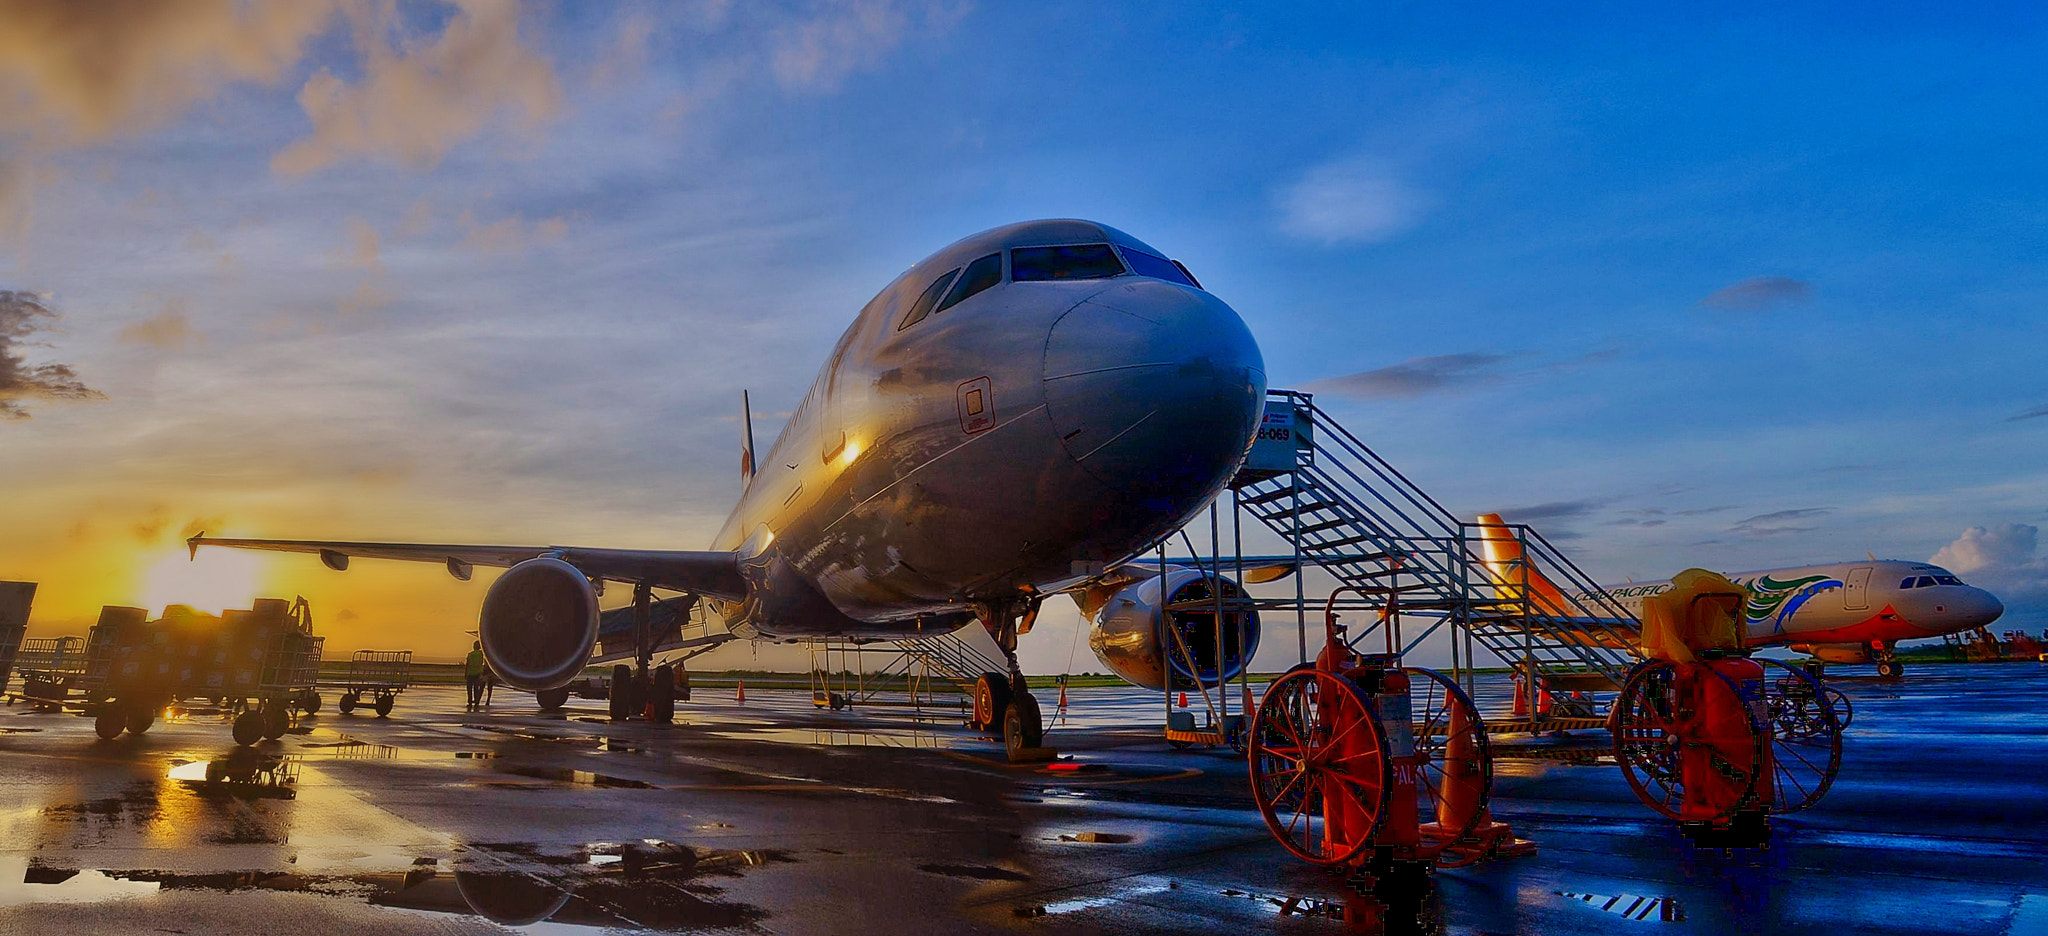 Photograph Two Airbus A220s by Vey Telmo on 500px